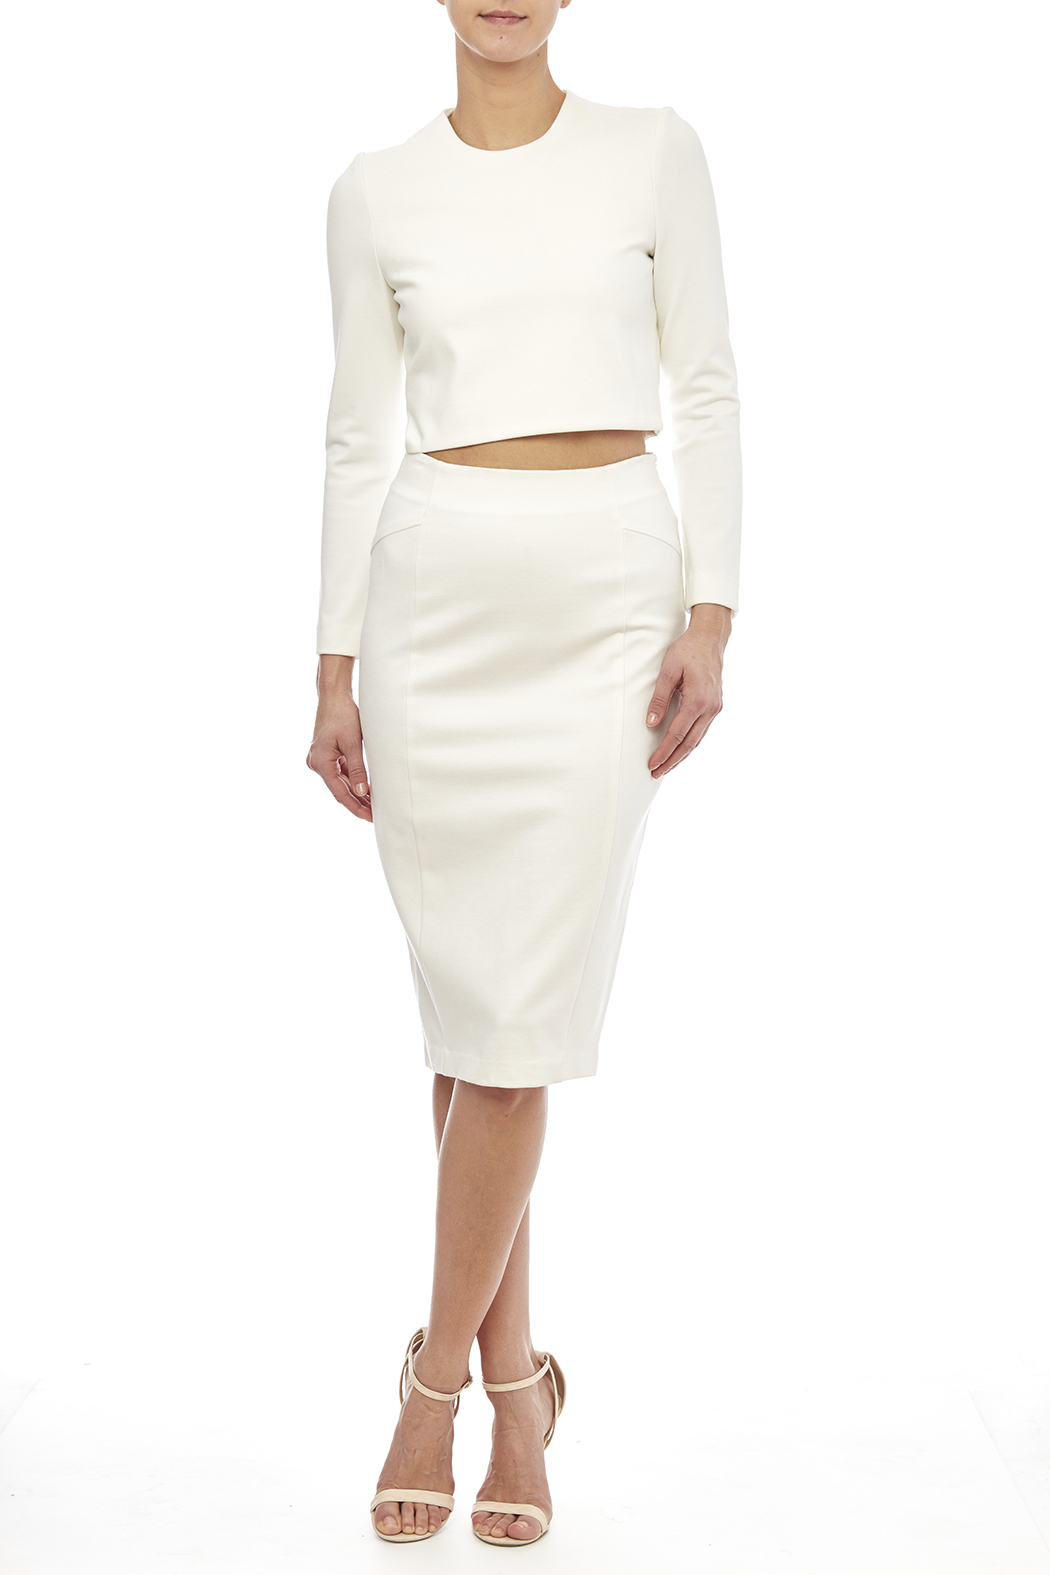 Blaque Label White Knit Pencil Skirt from Houston by Heiress ...